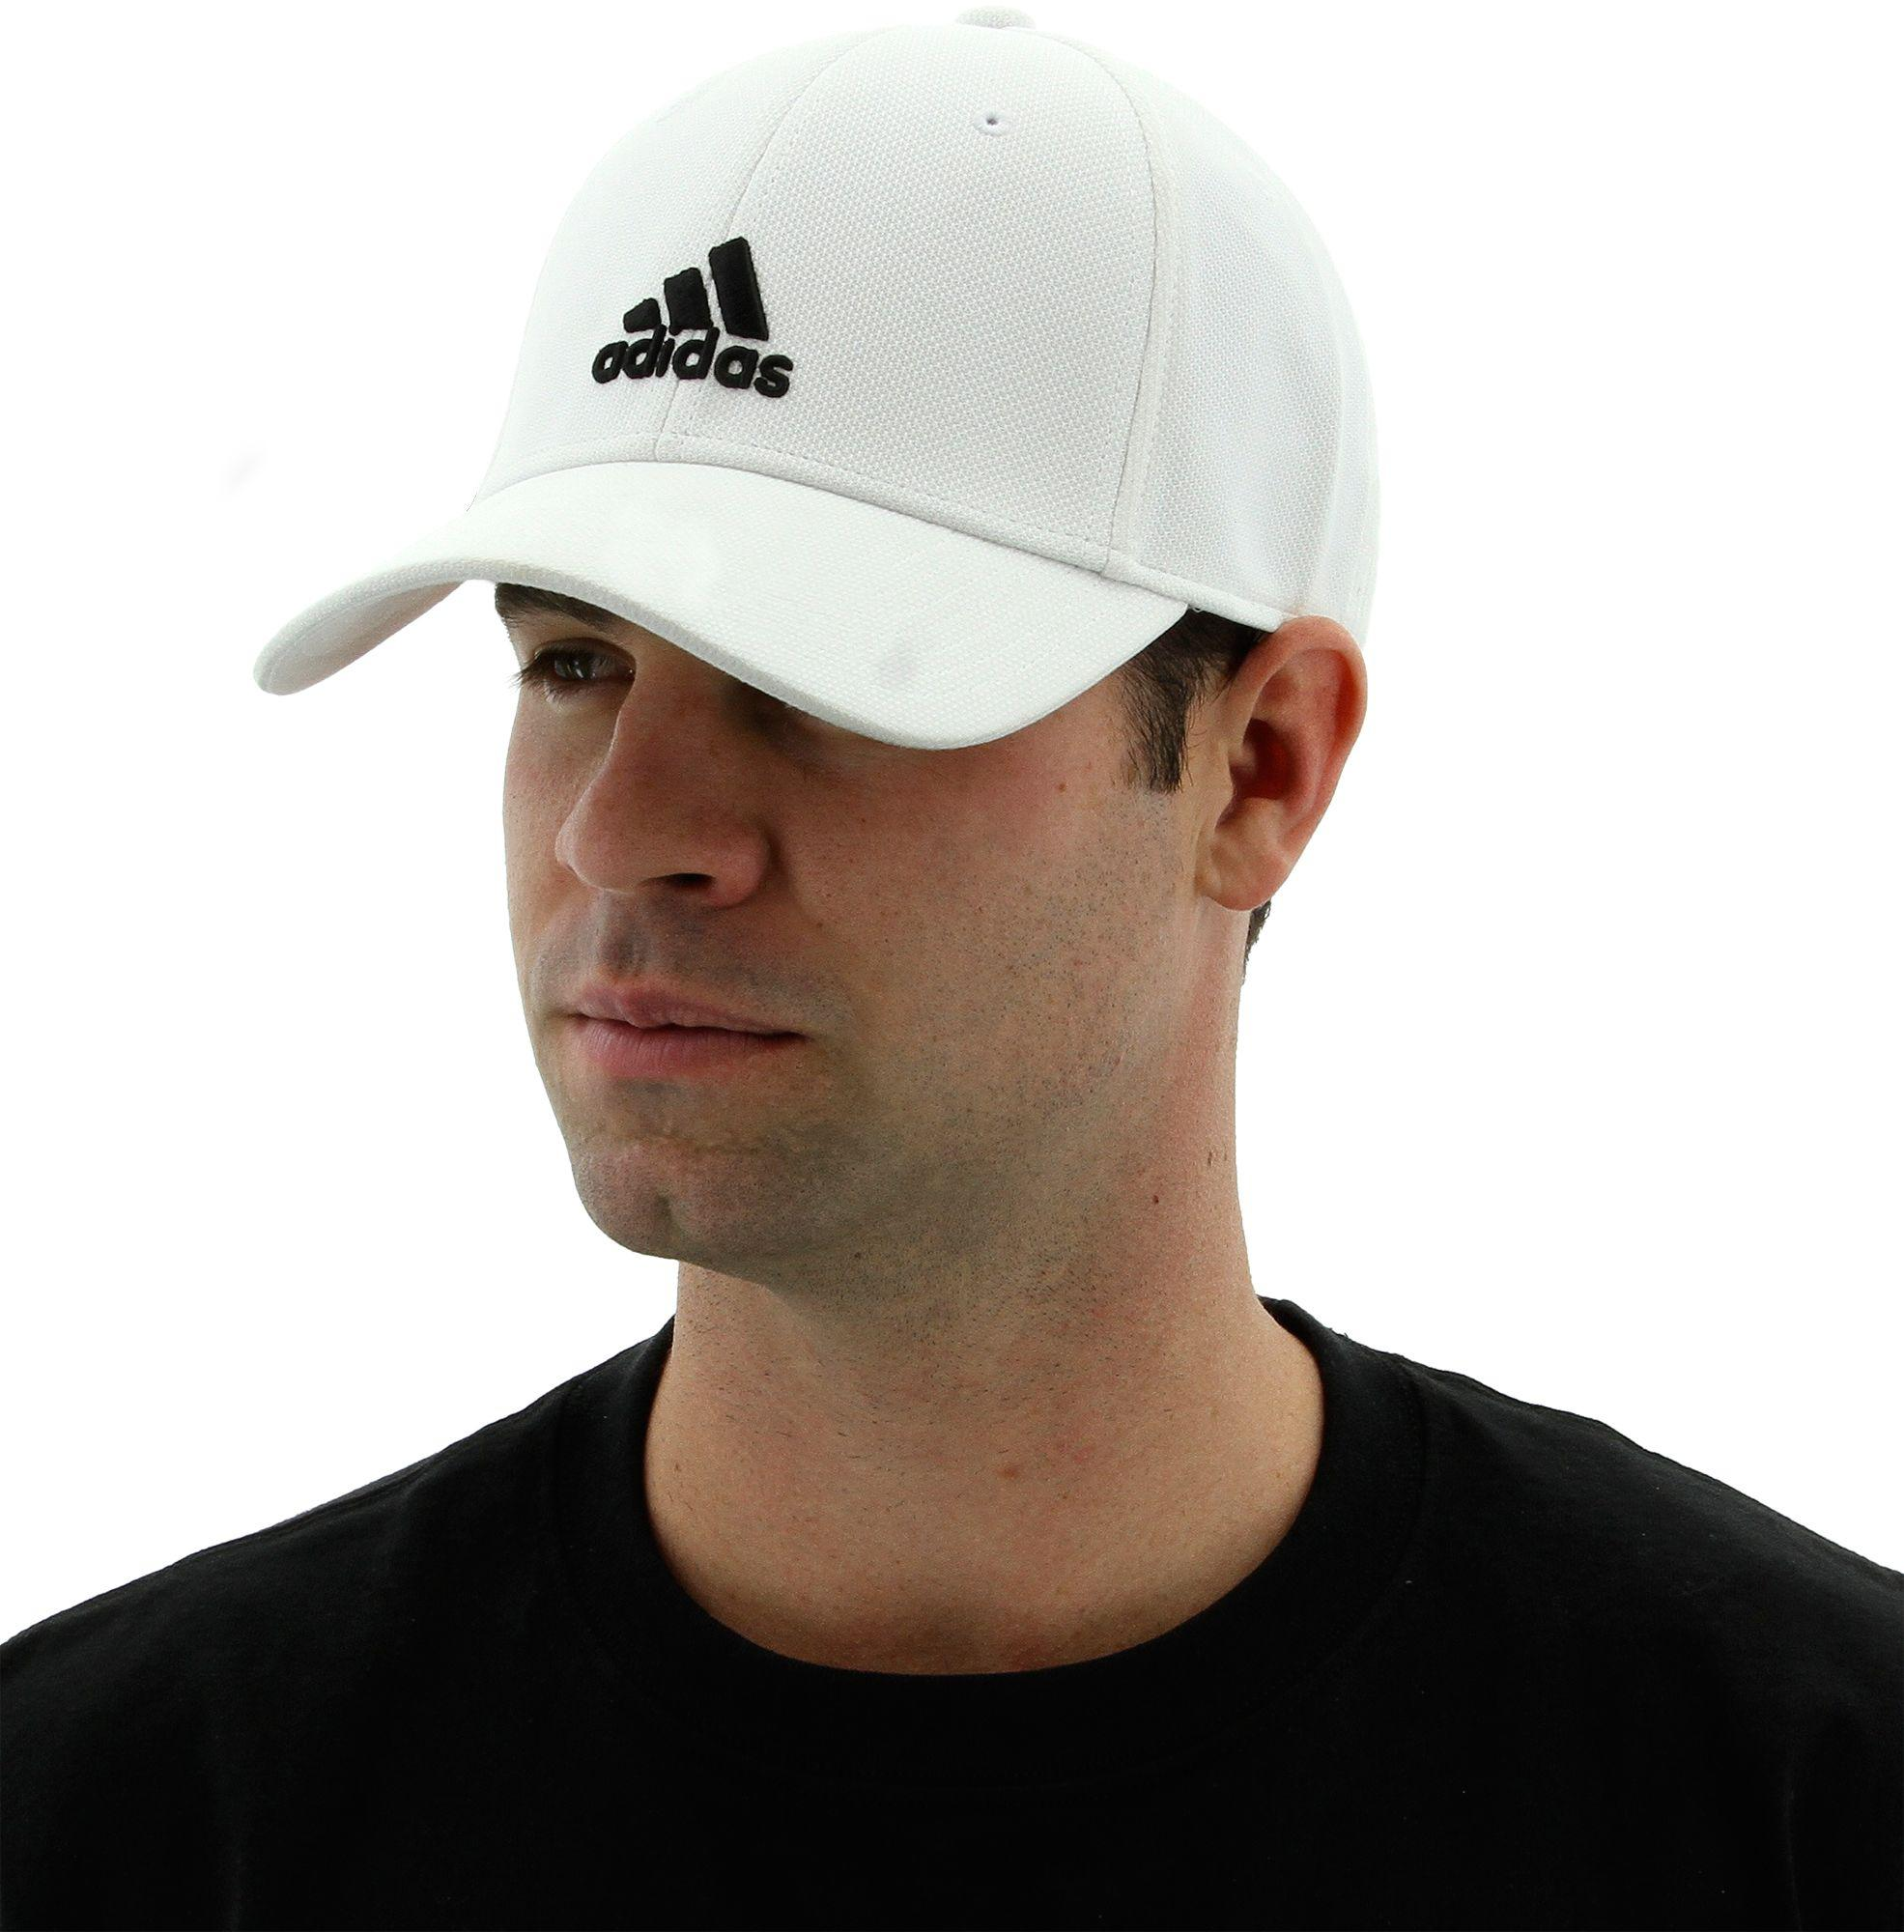 Lyst - adidas Rucker Stretch Fit Cap in White for Men f97fa674622a